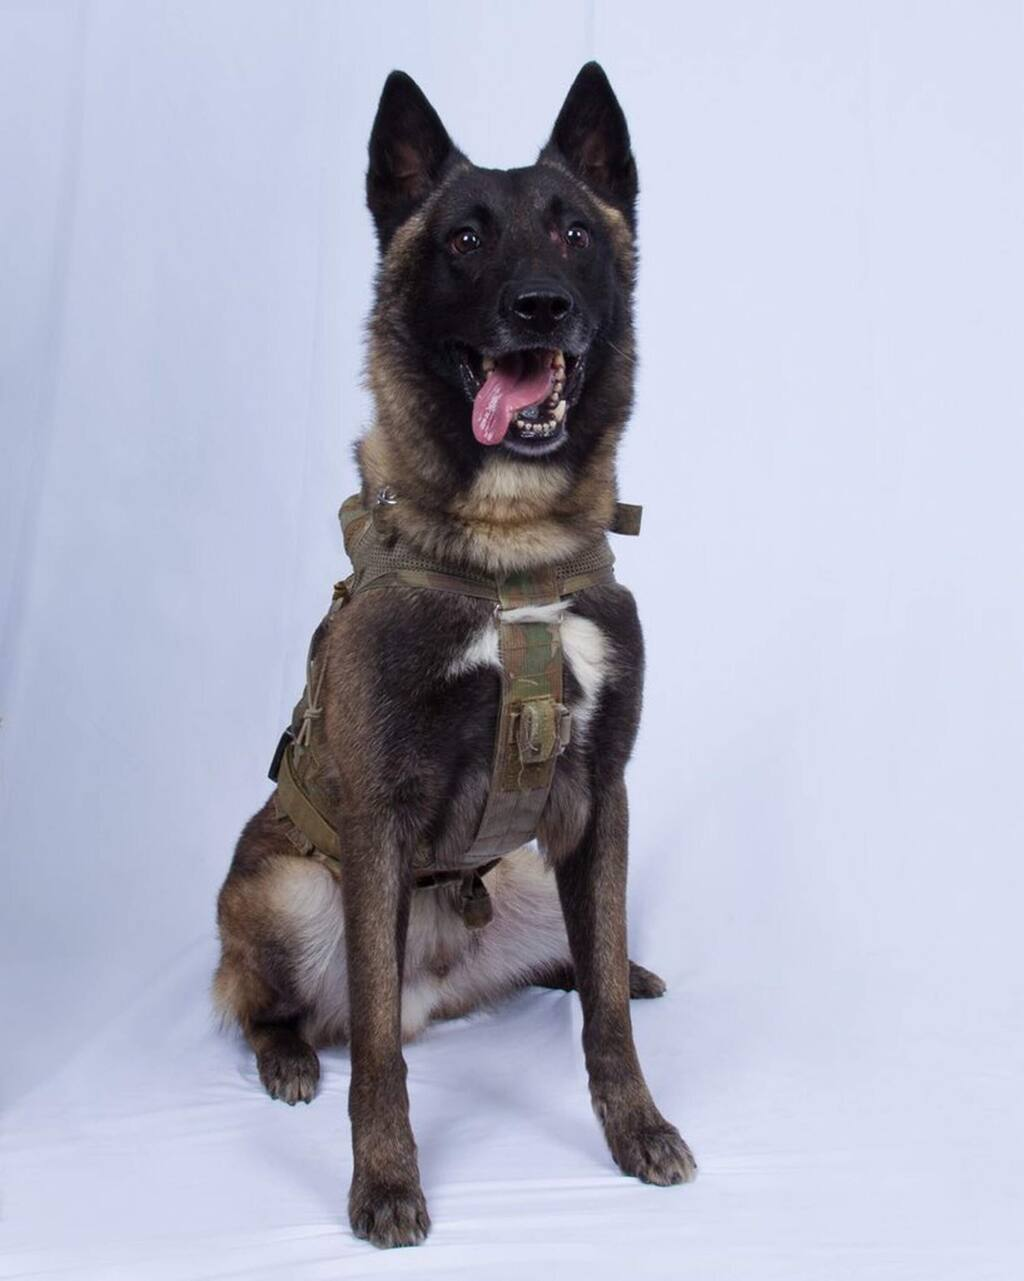 In this photo provided by the White House via the Twitter account of President Donald Trump after it was declassified by Trump, a photo of the military working dog that was injured tracking down Abu Bakr al-Baghdadi in a tunnel beneath his compound in Syria. Joint chiefs Chairman Gen. Mark Milley told reporters Monday that the animal 'performed a tremendous service' and said the dog was 'slightly wounded' but is now recovering and has returned to duty at an undisclosed location. The dog's name remains classified. (White House via AP)